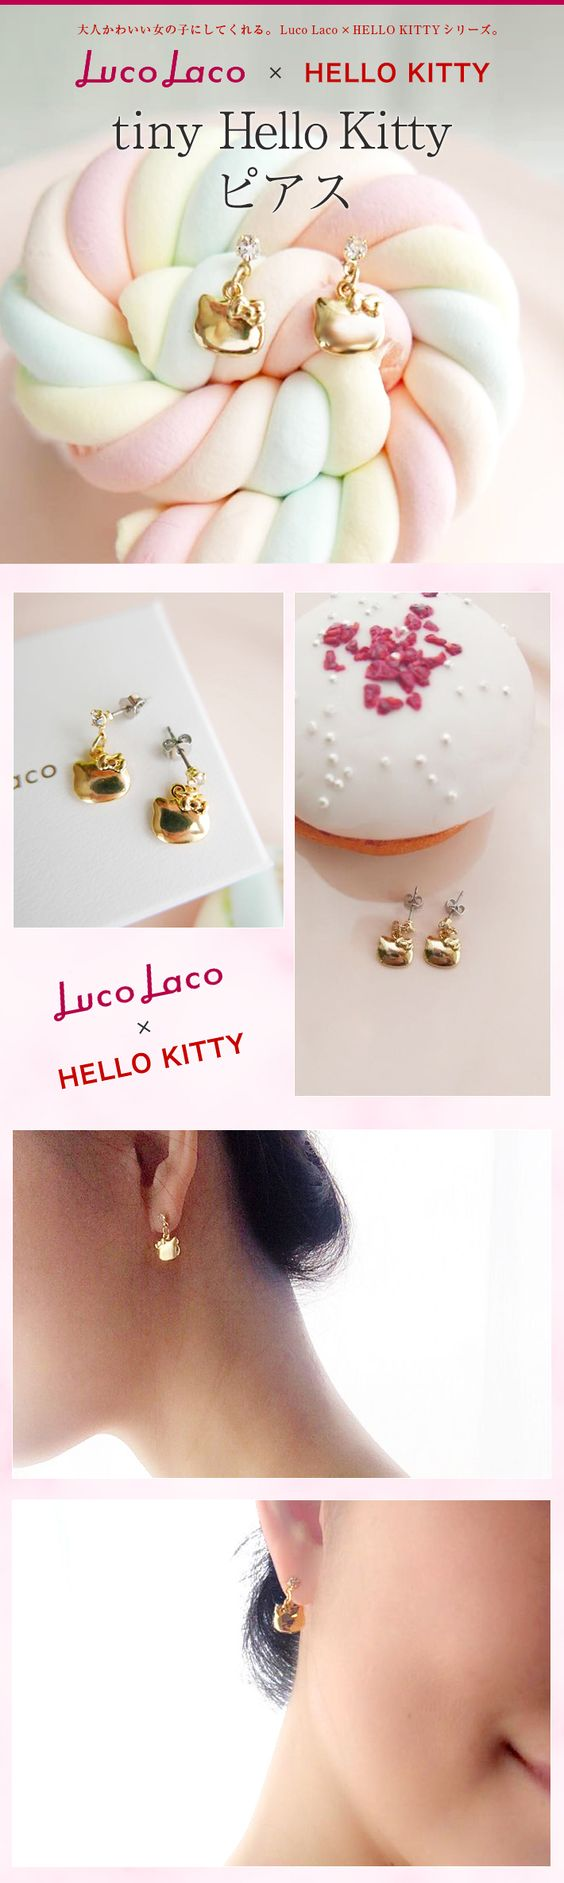 Hello Kitty x Luco Laco tiny Pierce Earrings